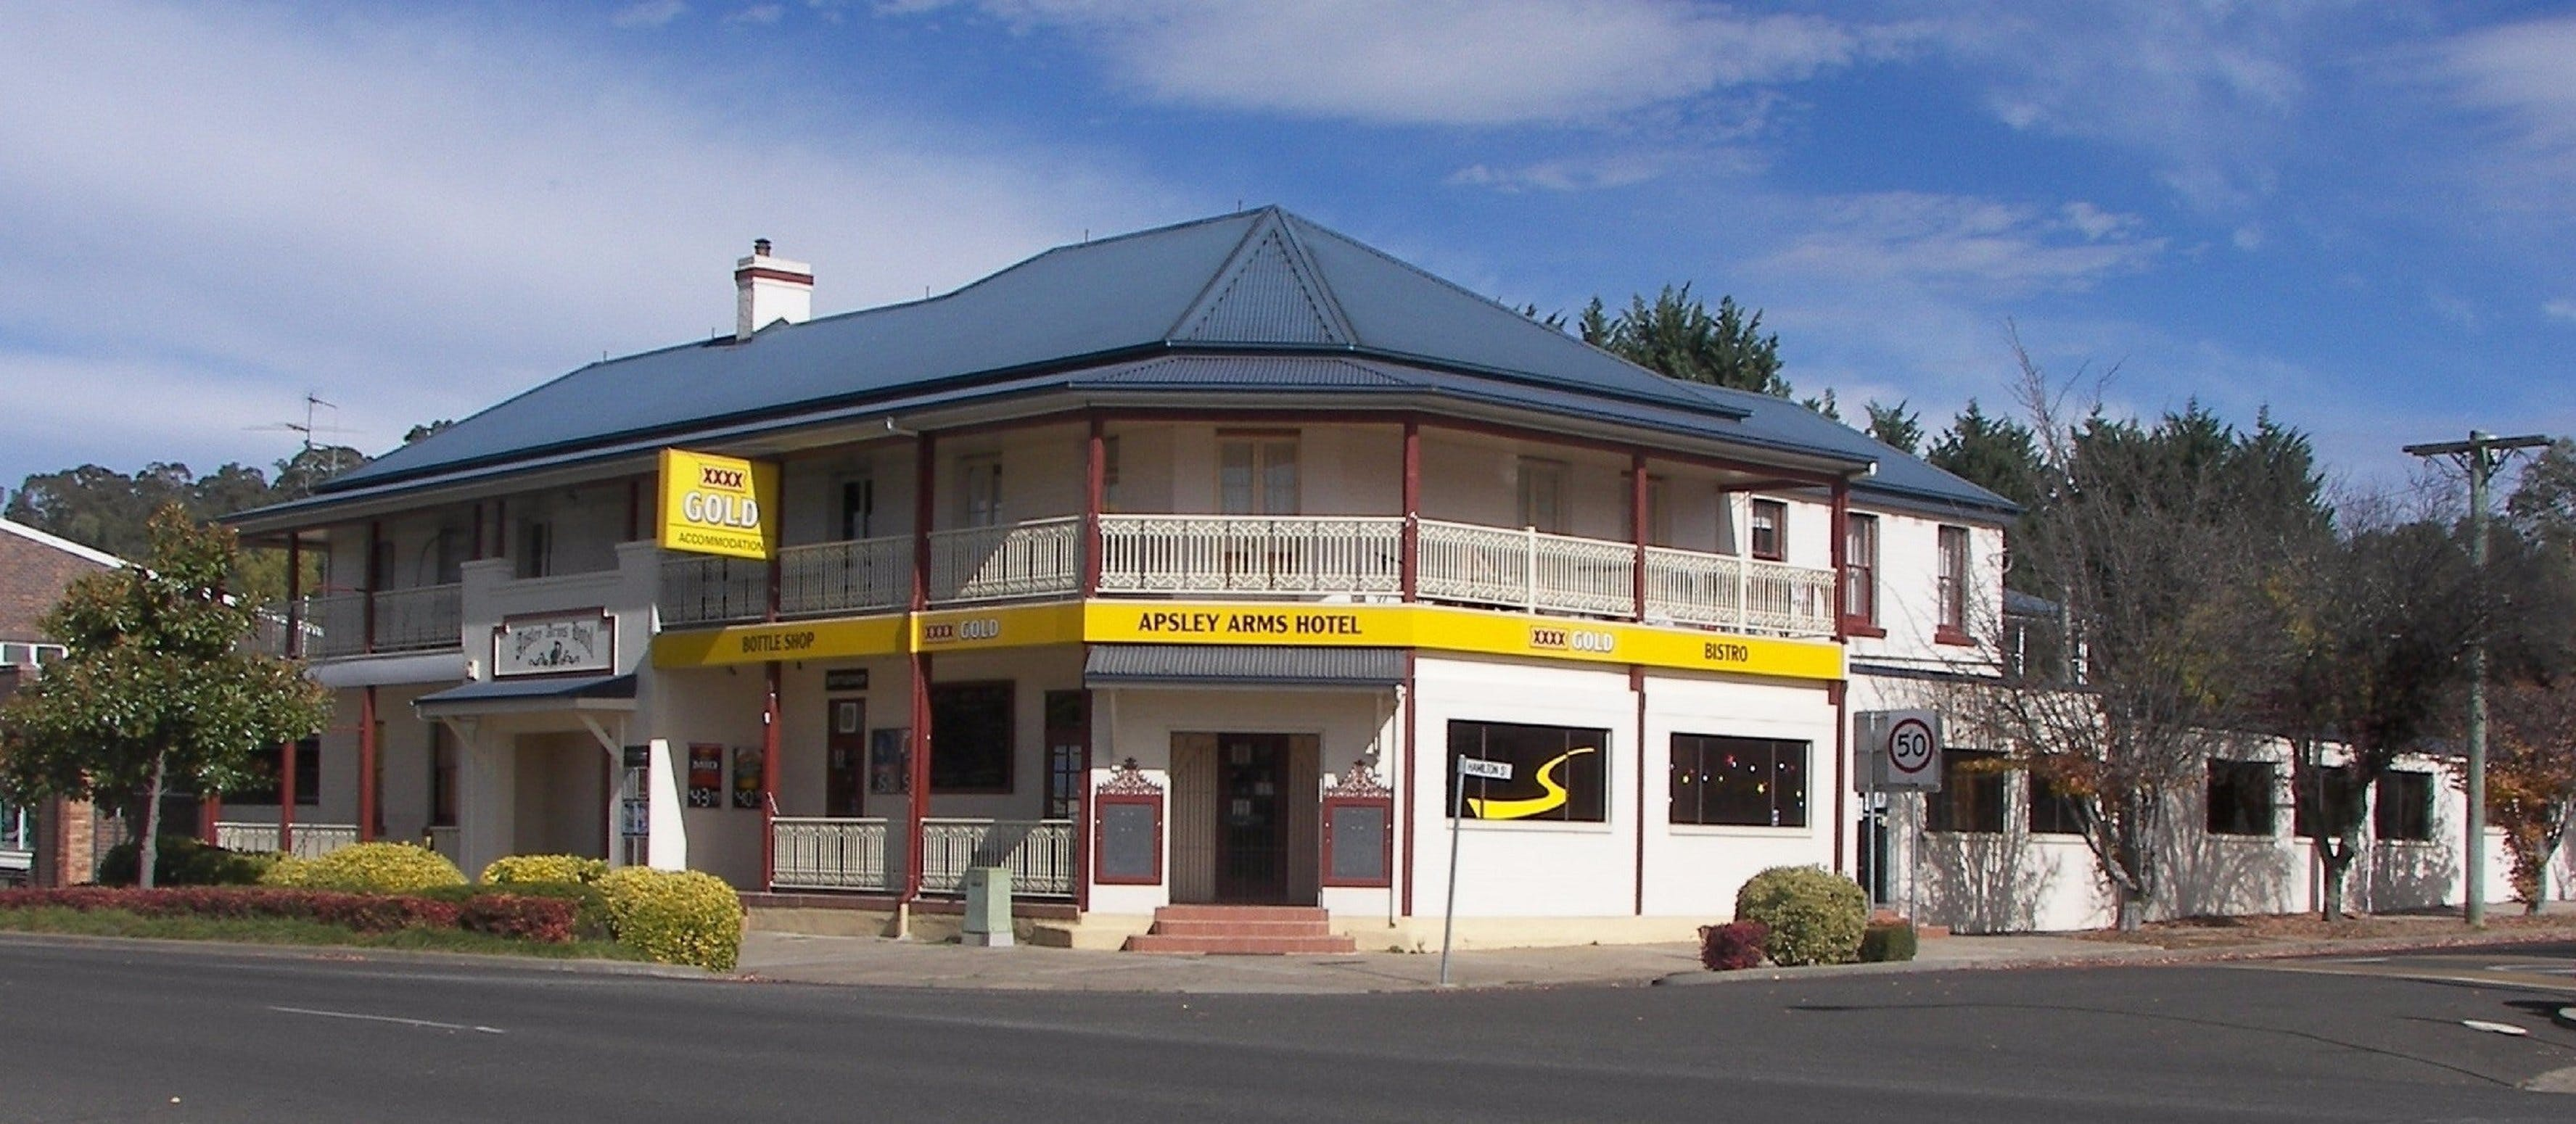 Apsley Arms Hotel - Accommodation in Bendigo